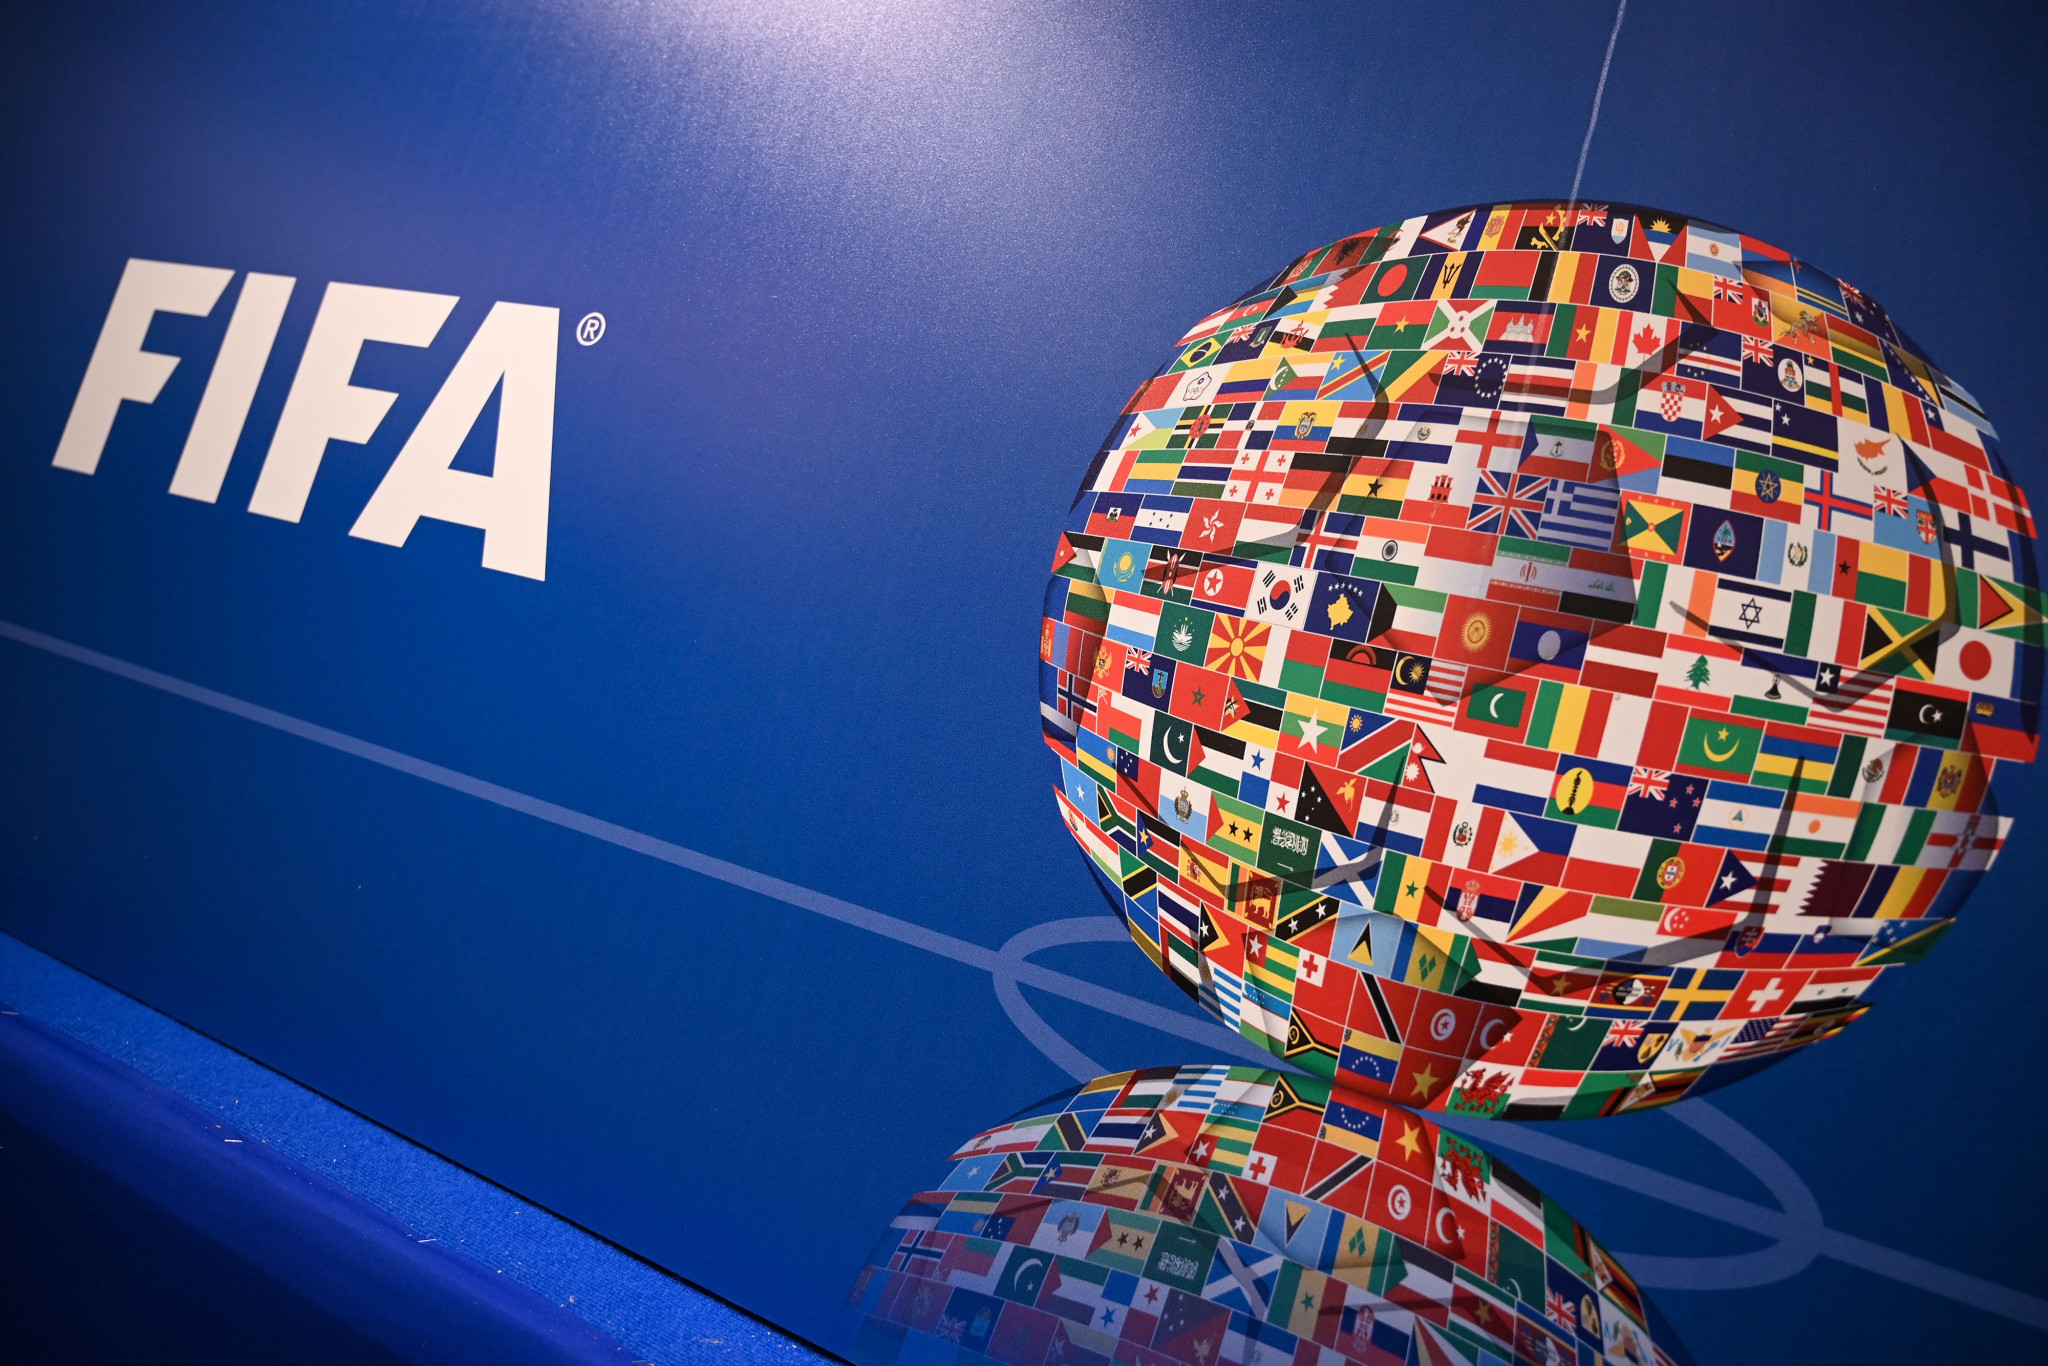 FIFA tops 2019 #SportOnSocial rankings